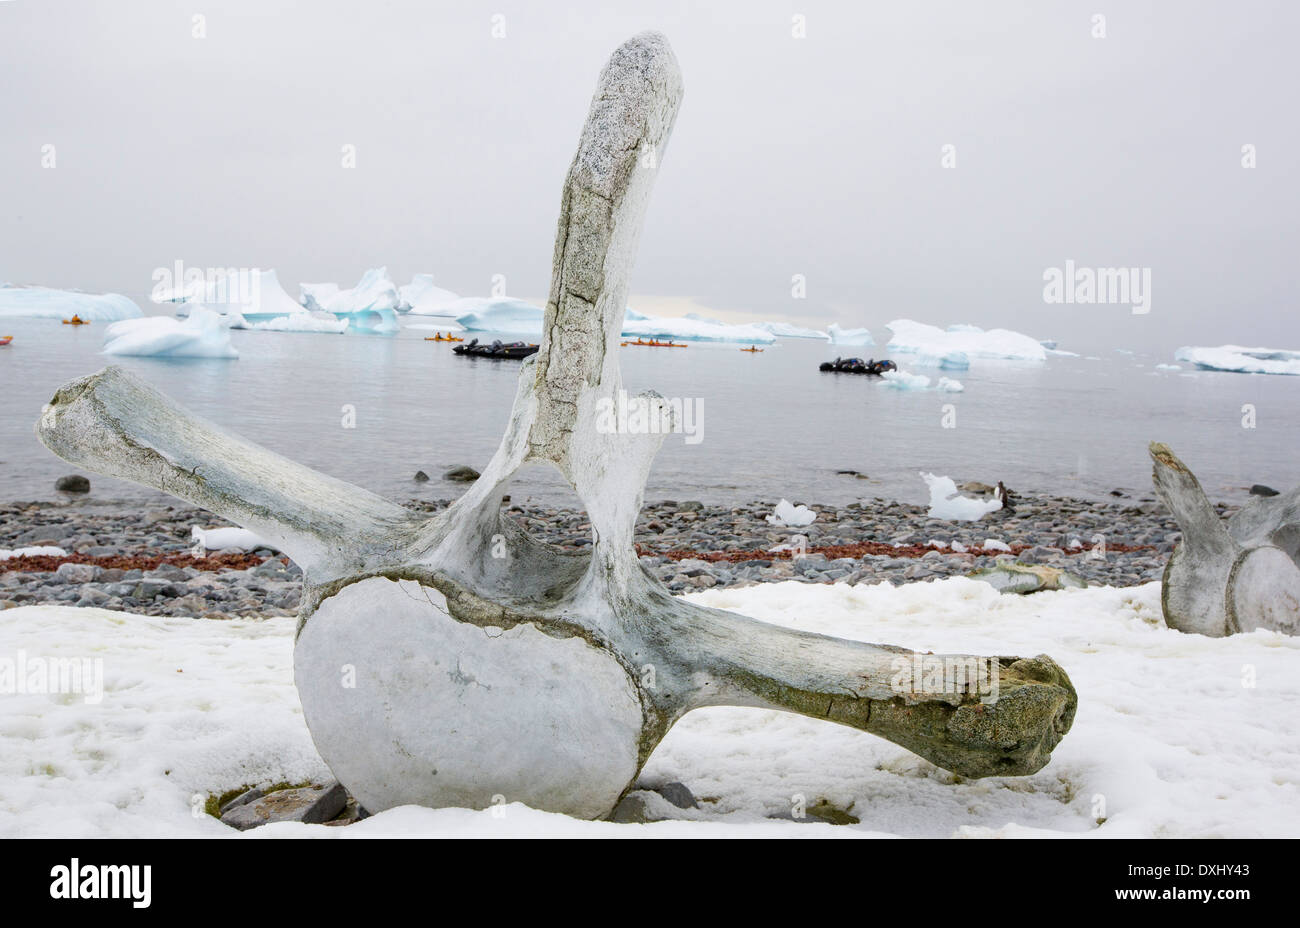 Curverville Island on the Antarctic Peninsular, which is one of the fastest warming places on the planet, with a whale vertebrae - Stock Image